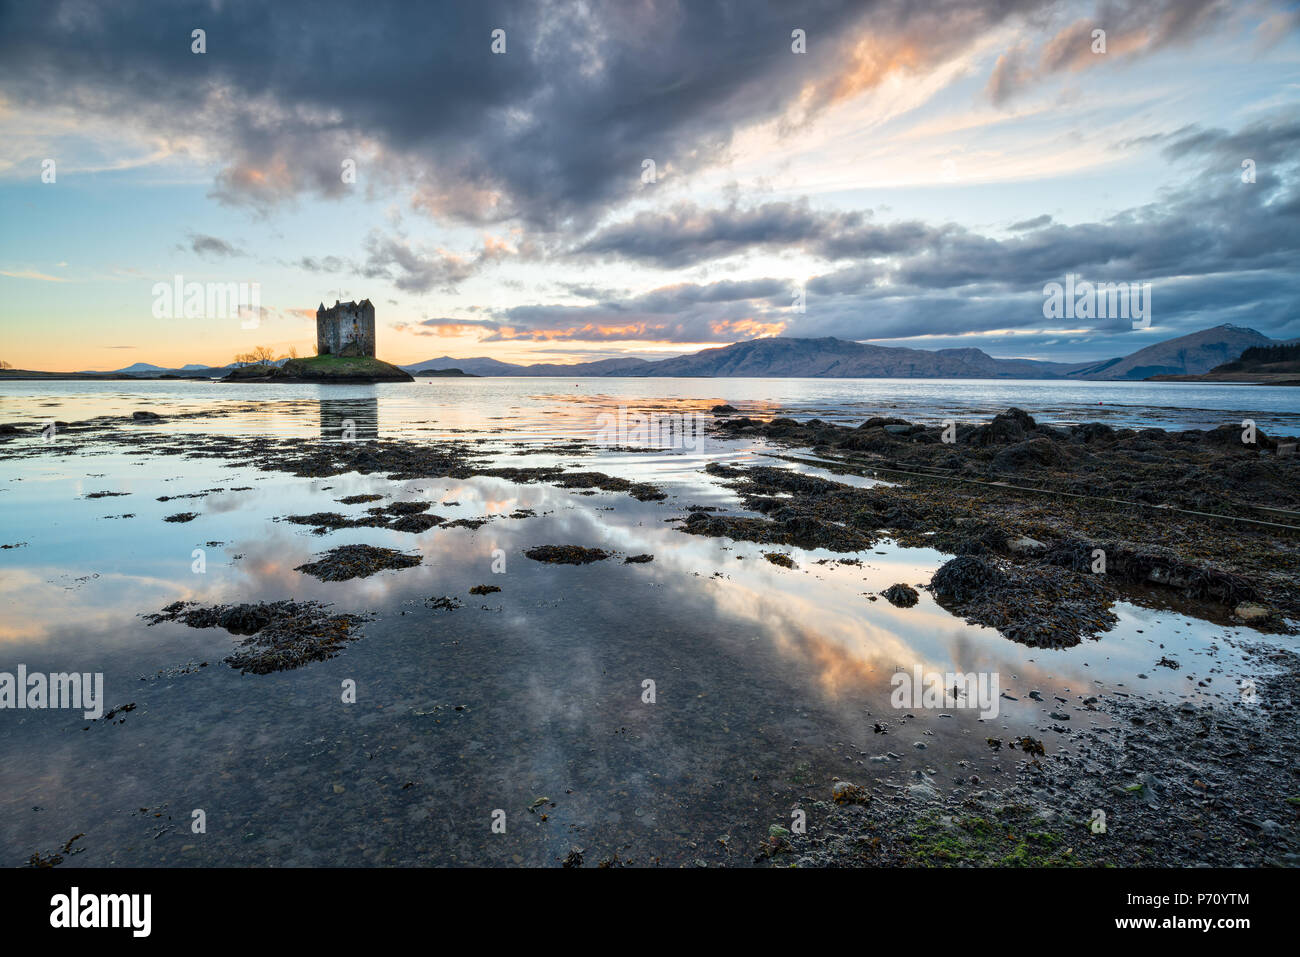 Sunset over Castle Stalker on the shores of Loch Linnhe near Appin in Scotland - Stock Image